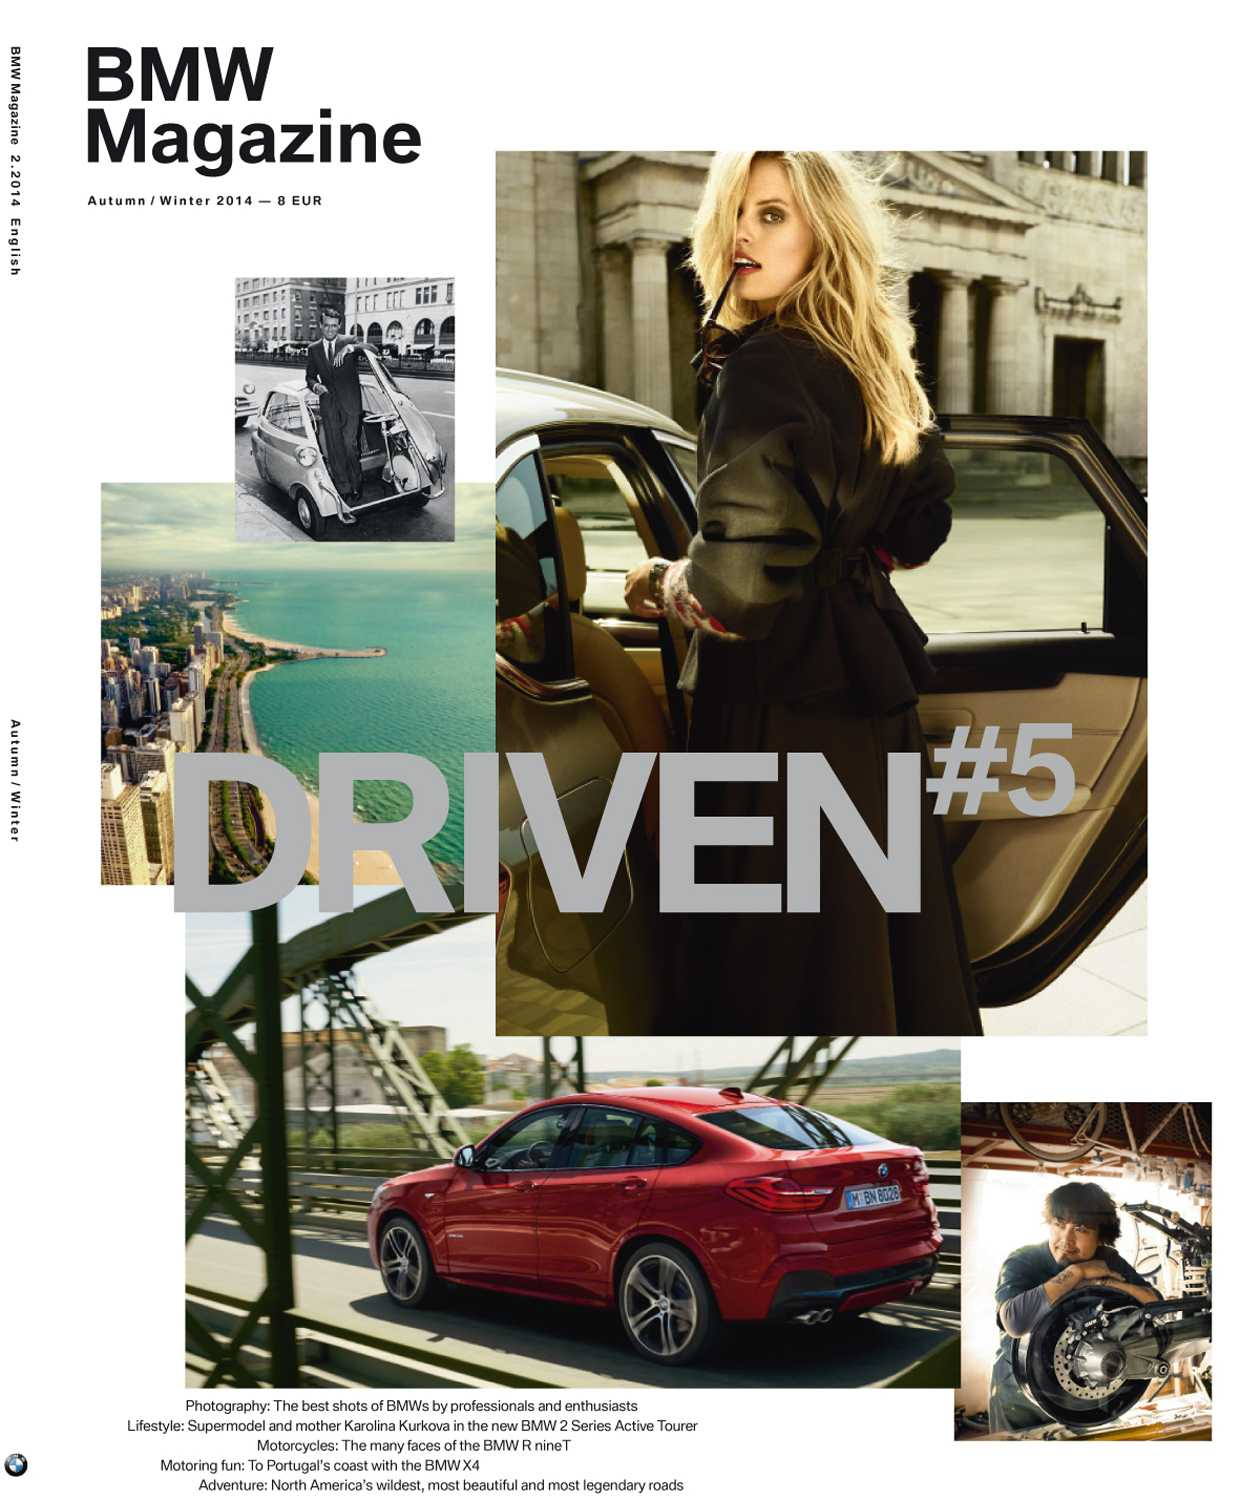 BMW Magazine now available in digital form worldwide